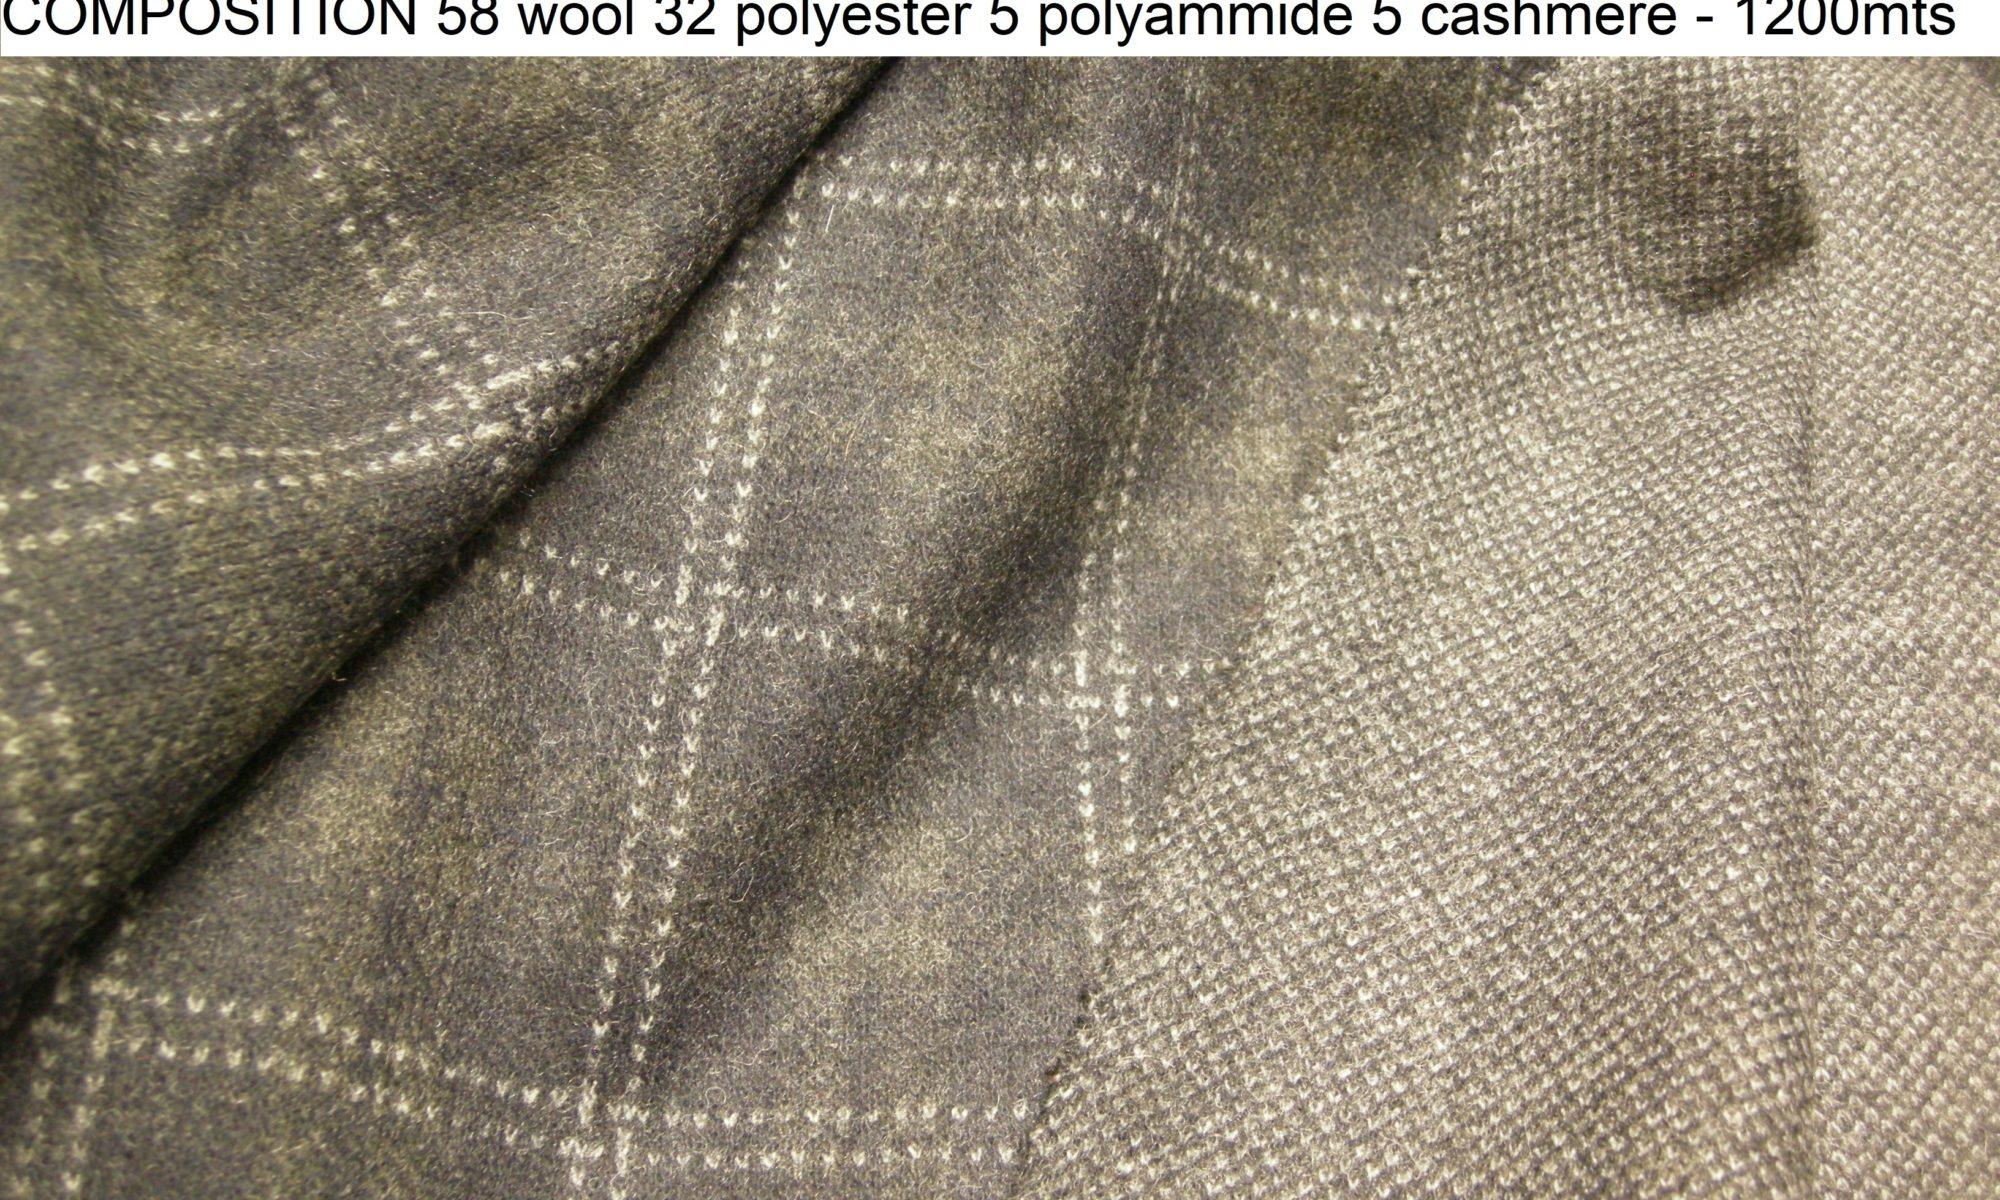 ART 7434 double face cashmere blend windowpane checkers jersey knit coat fabric WIDTH cm145 WEIGHT gr620 - gr427 square meter - COMPOSITION 58 wool 32 polyester 5 polyammide 5 cashmere - 1200mts